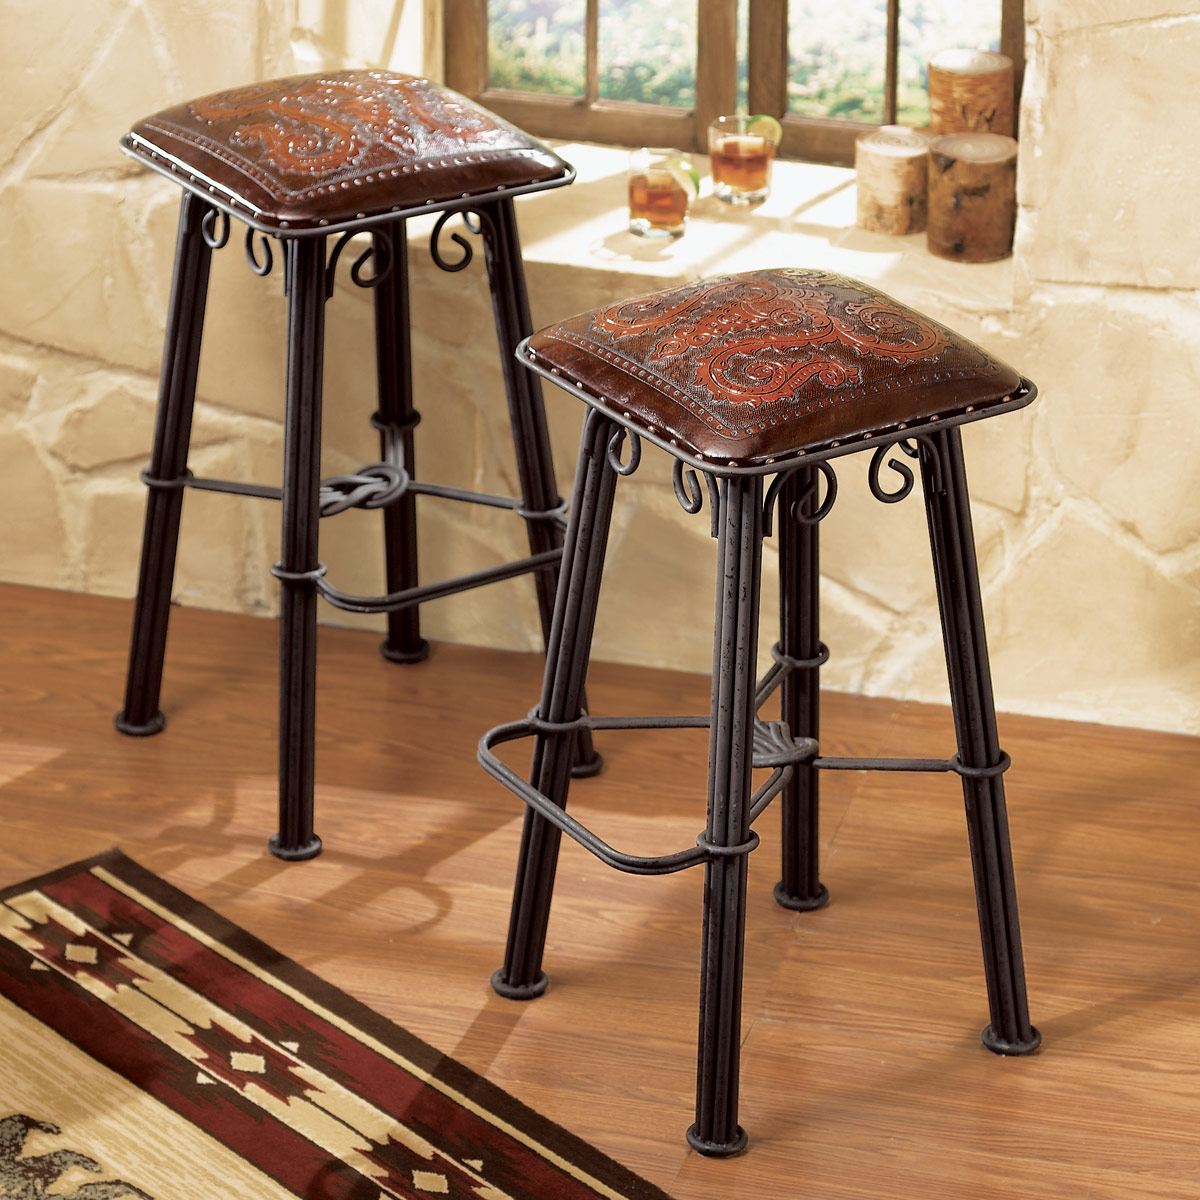 Iron Counter Stool Tooled Leather Seat - Set of 3